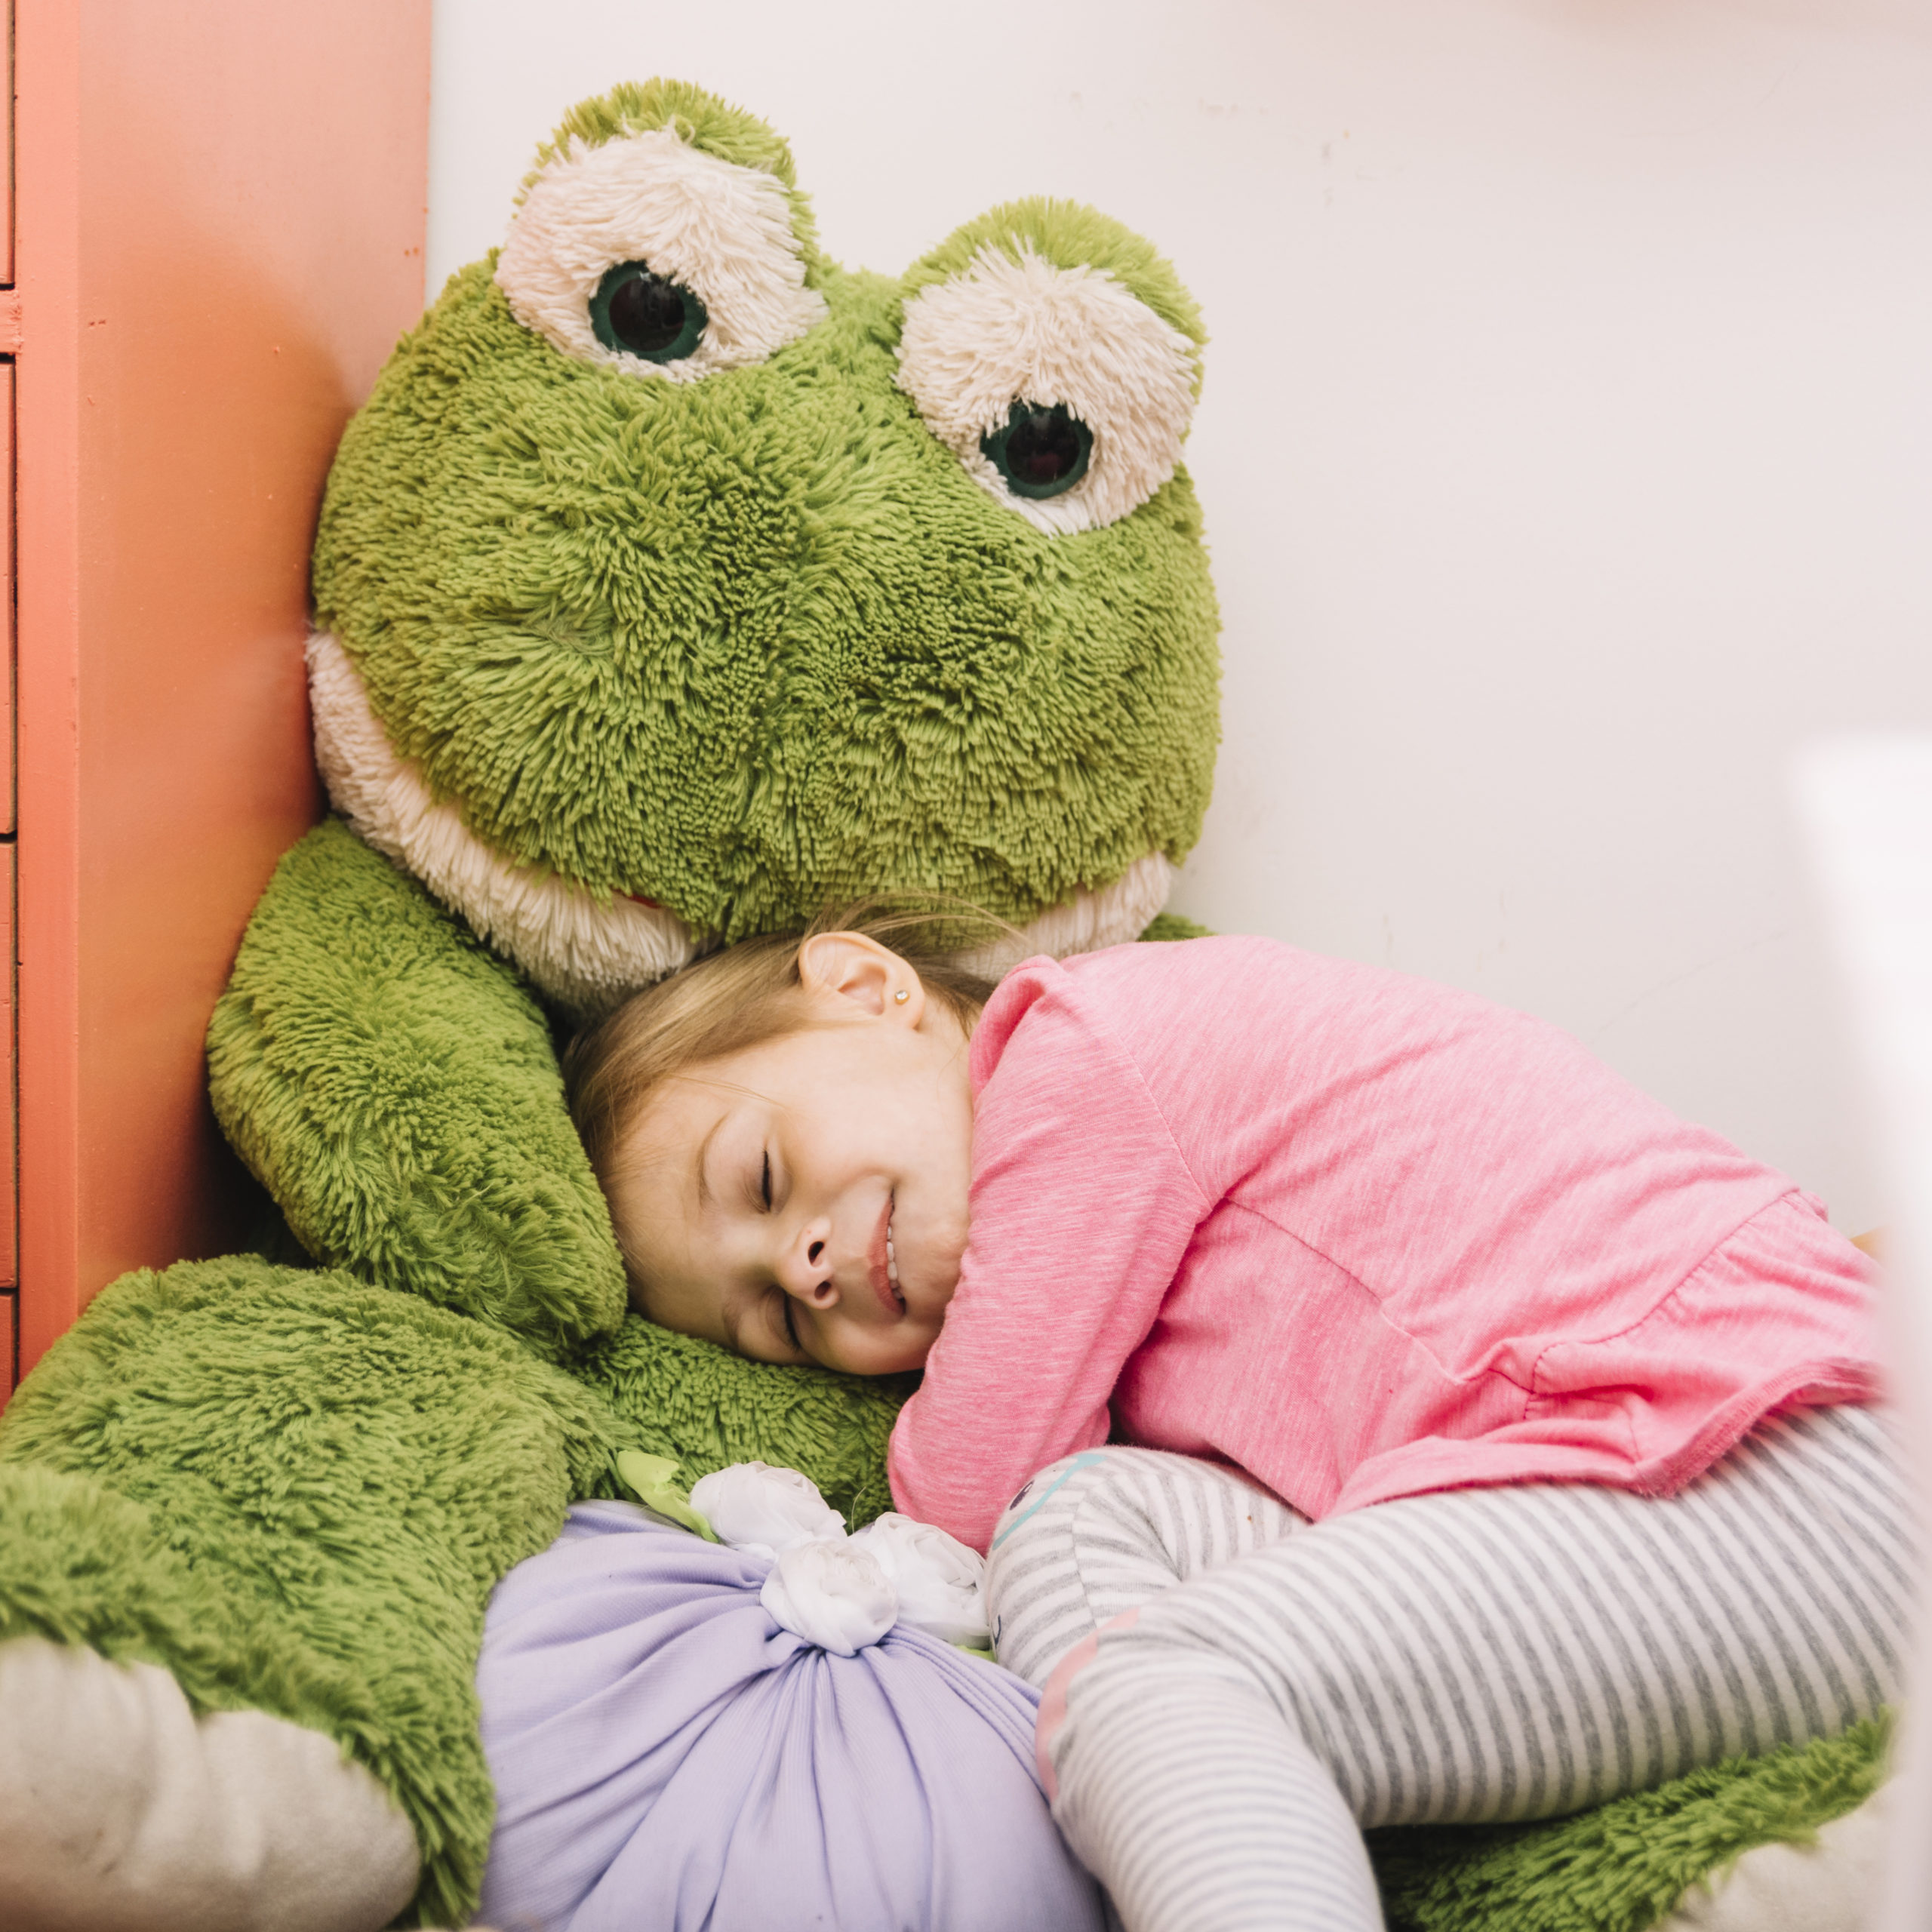 cute-girl-sleeping-with-soft-toy